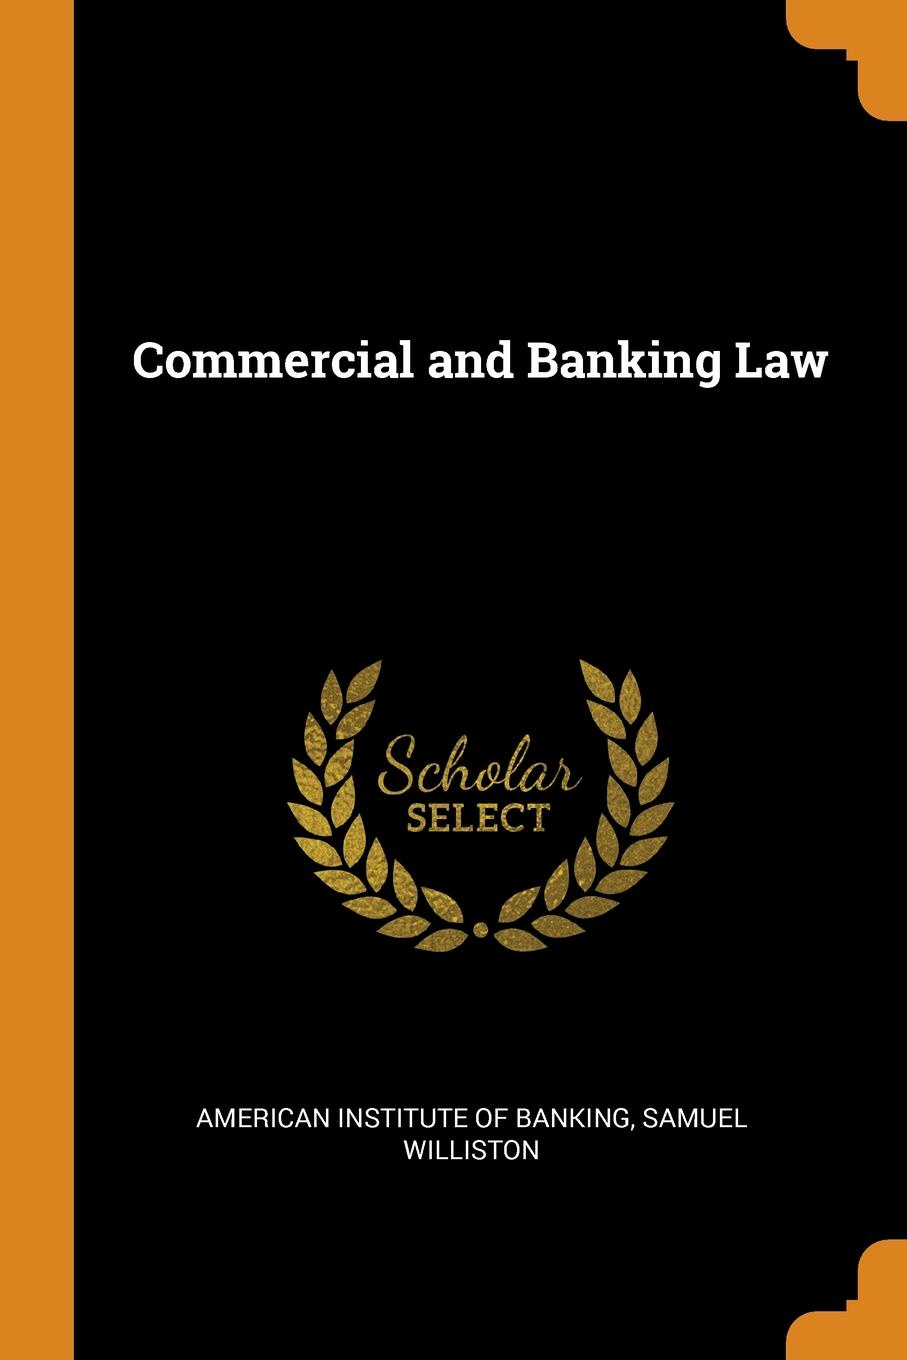 Commercial and Banking Law. Samuel Williston